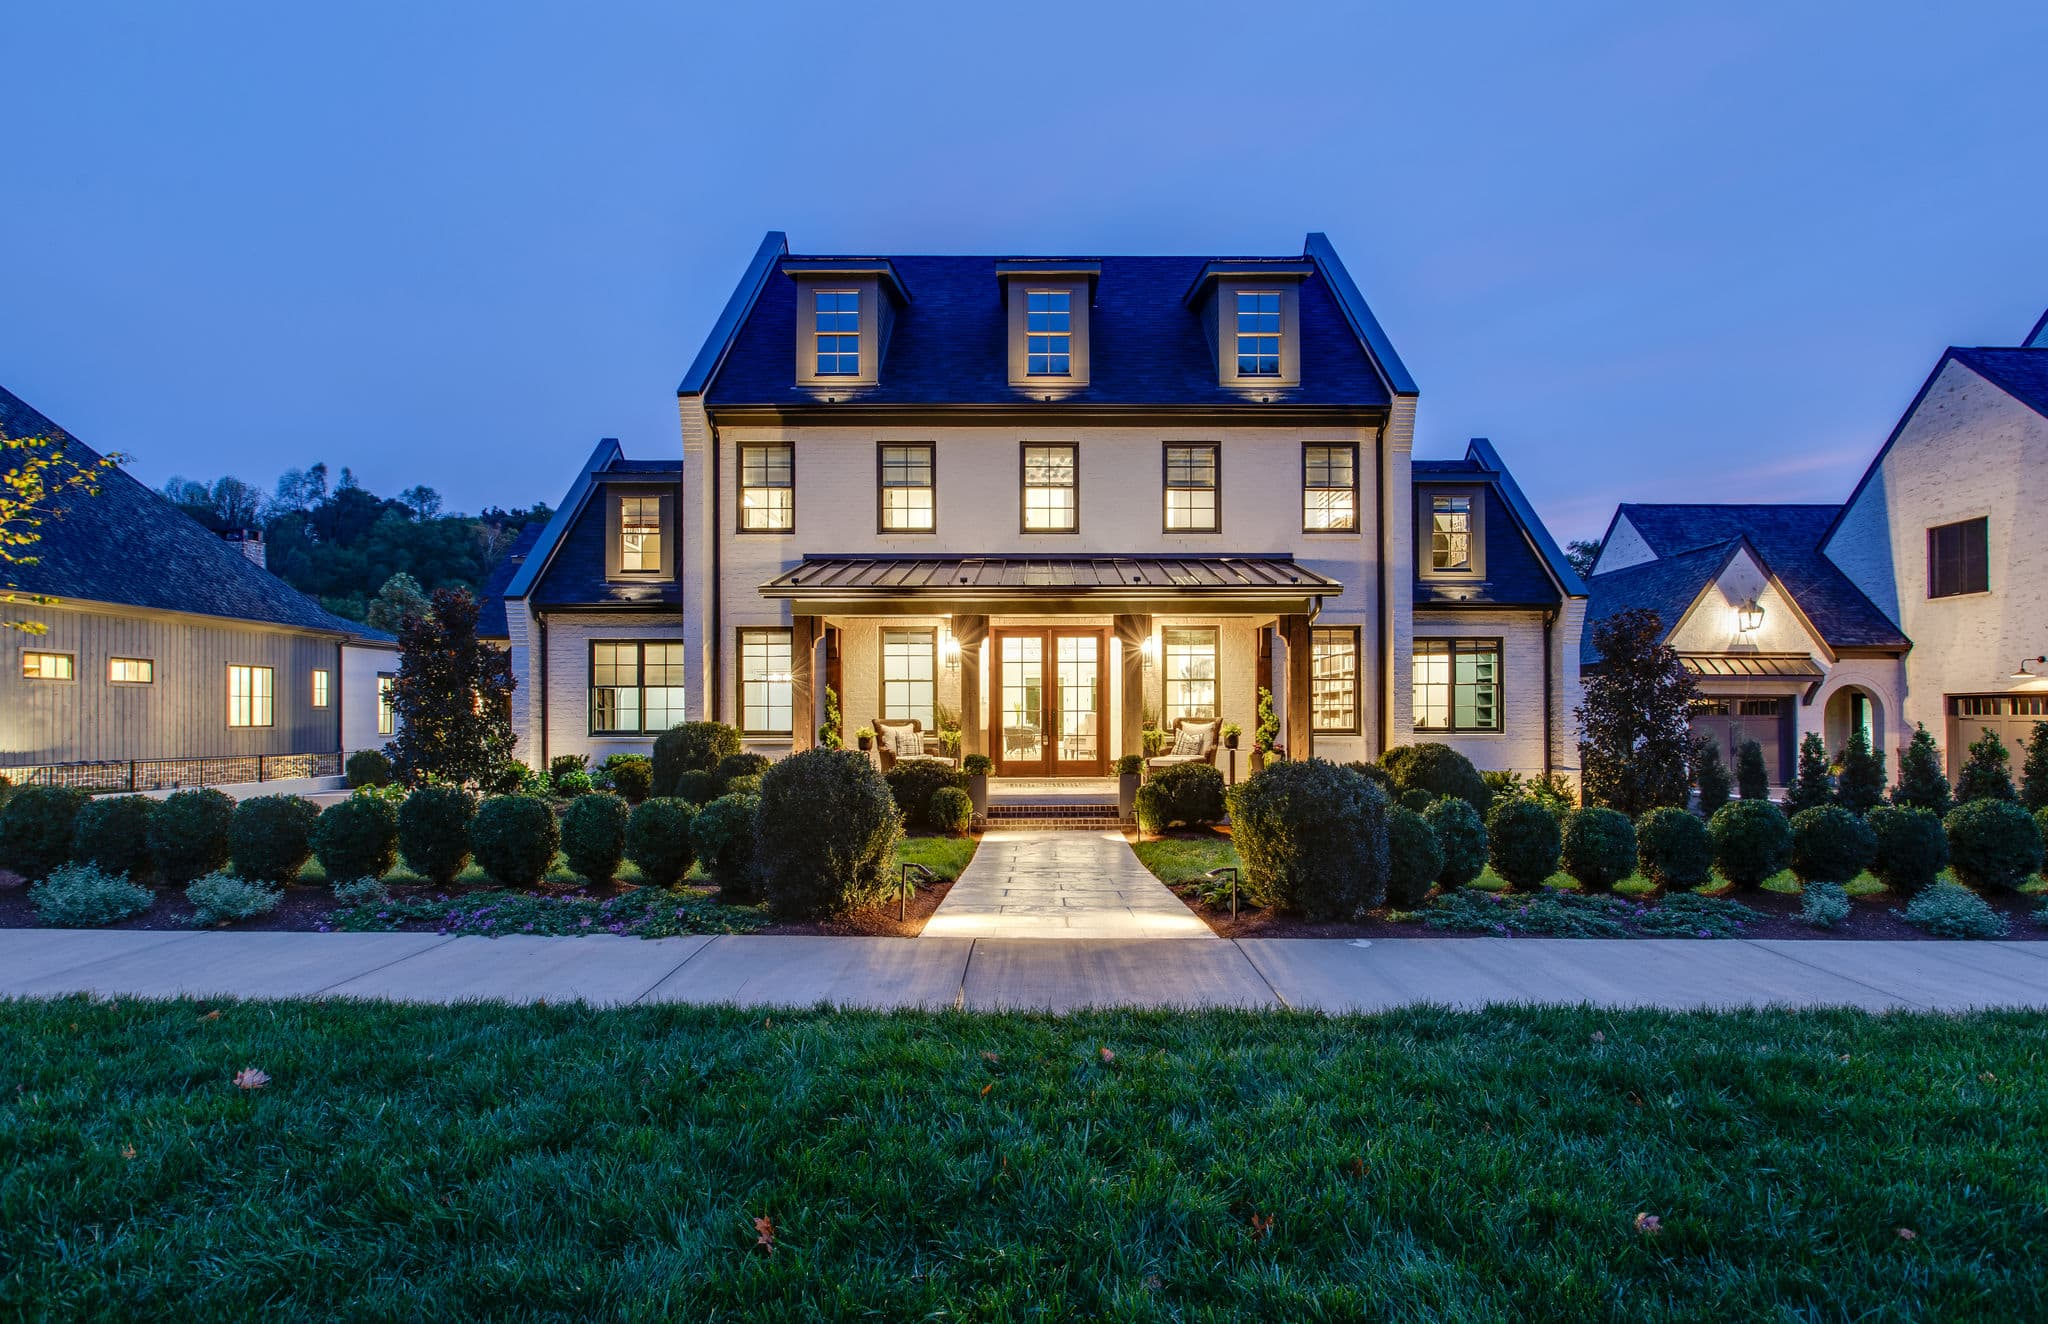 Luna Custom Homes Nashville Parade of Homes